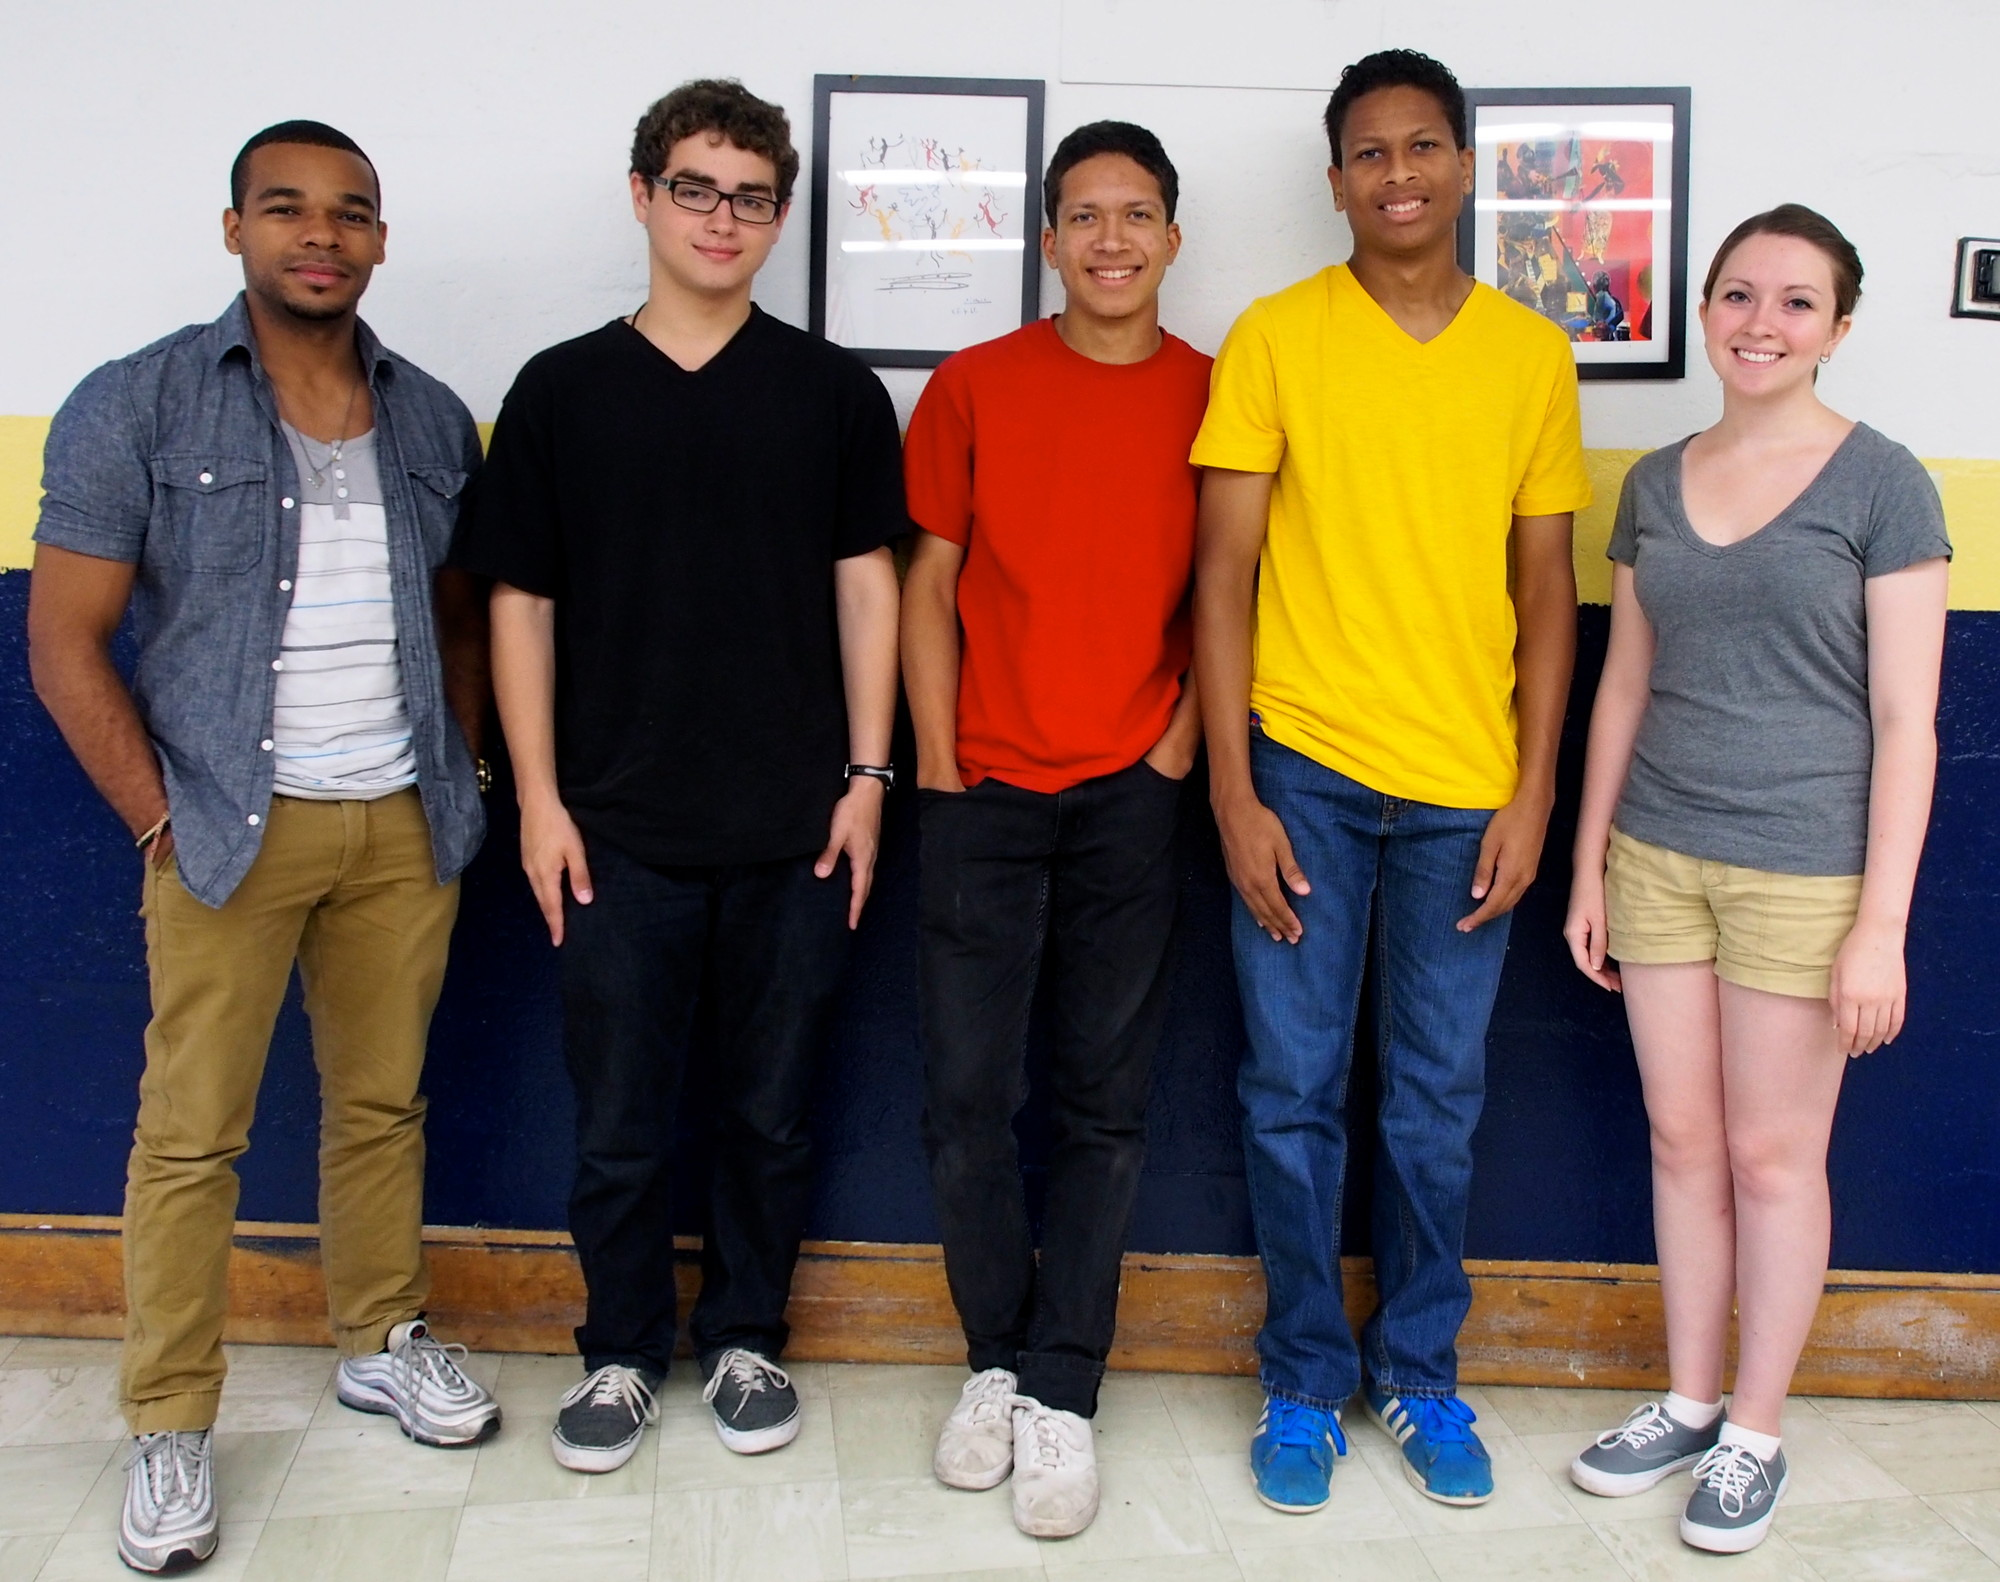 Paul Edme, left, Adam Hartman, Anthony Carrion, Reginald Carrion and Ally Callaghan worked as extras on a TV show that filmed at BHS last week. Natalia Barr, a current BHS student, interviewed her peers about their experiences.